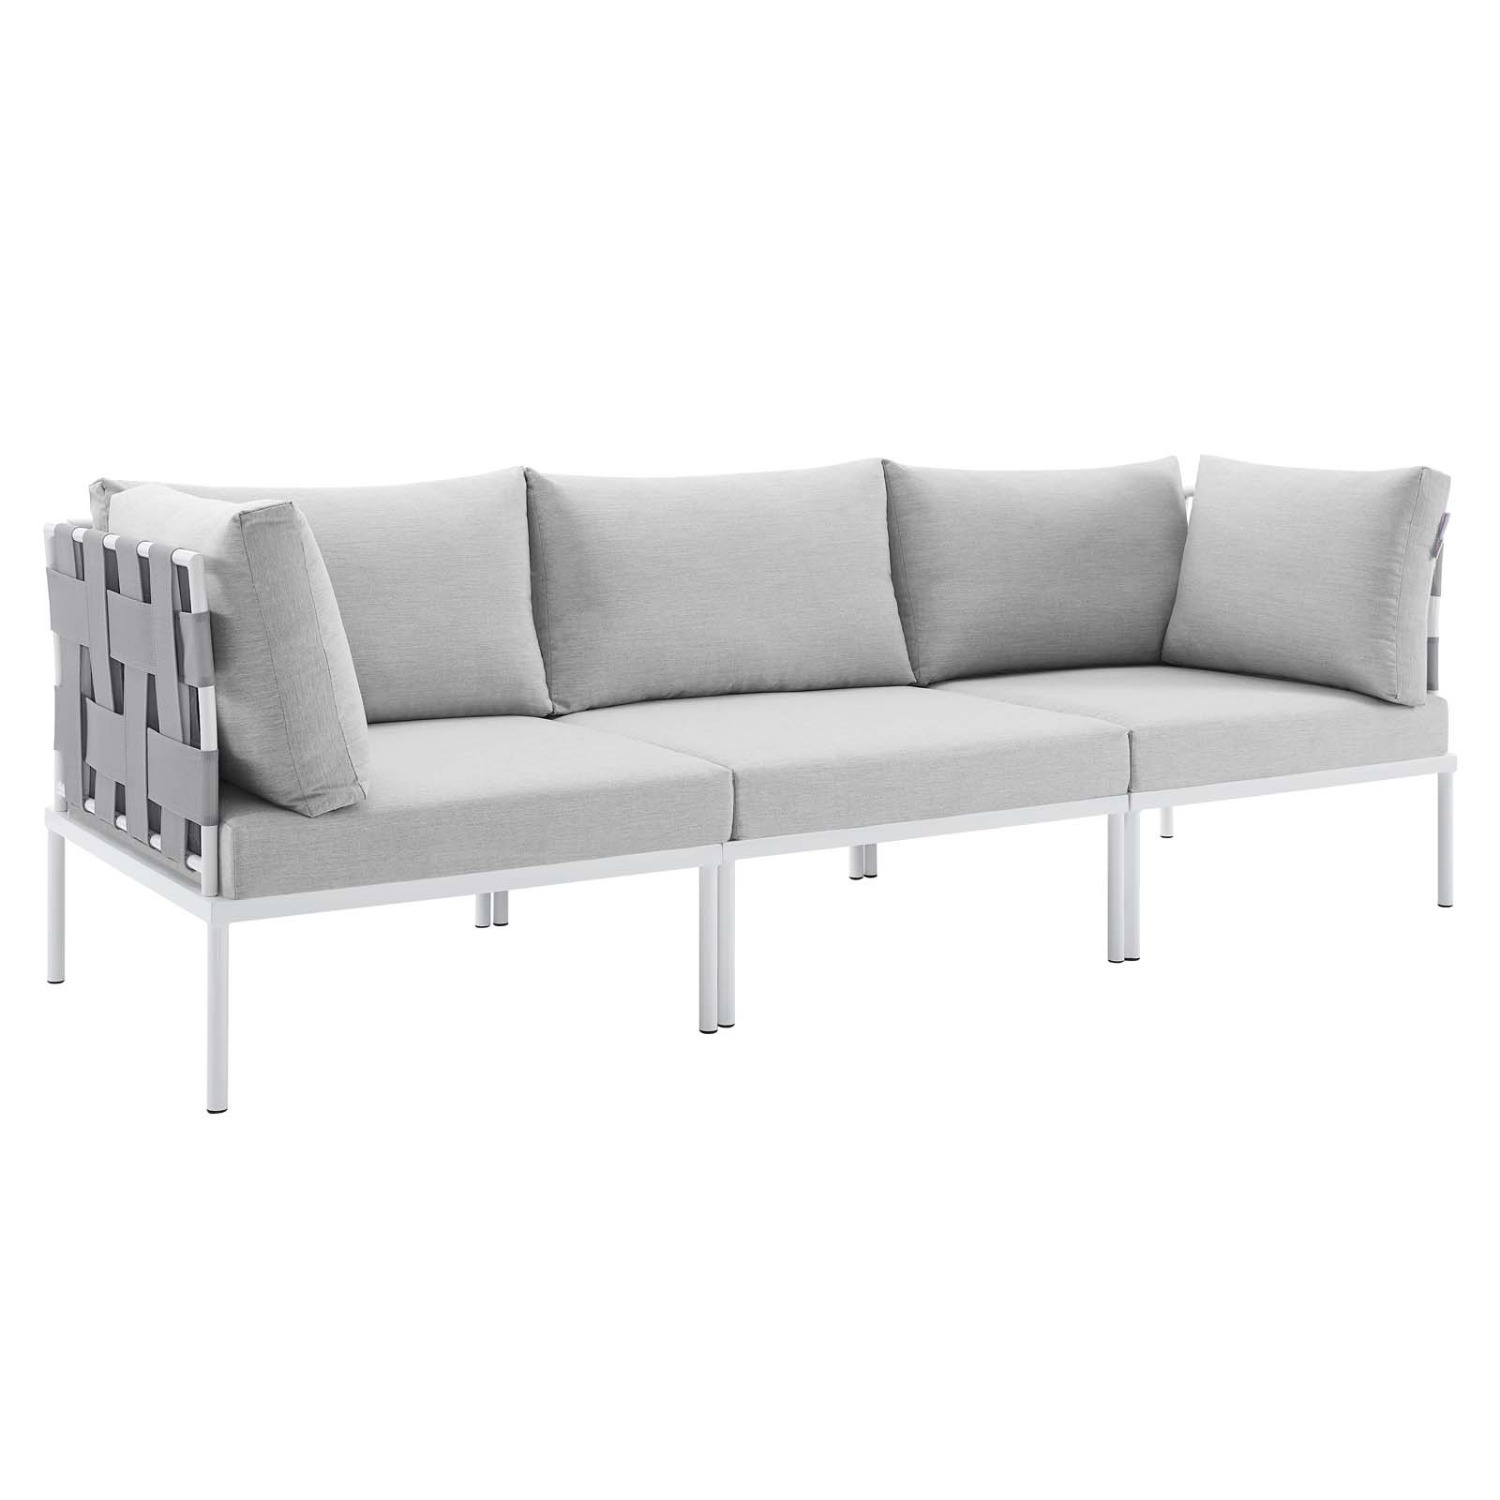 Outdoor Sofa In Gray Silk Weave & Gray Cushion - image-0